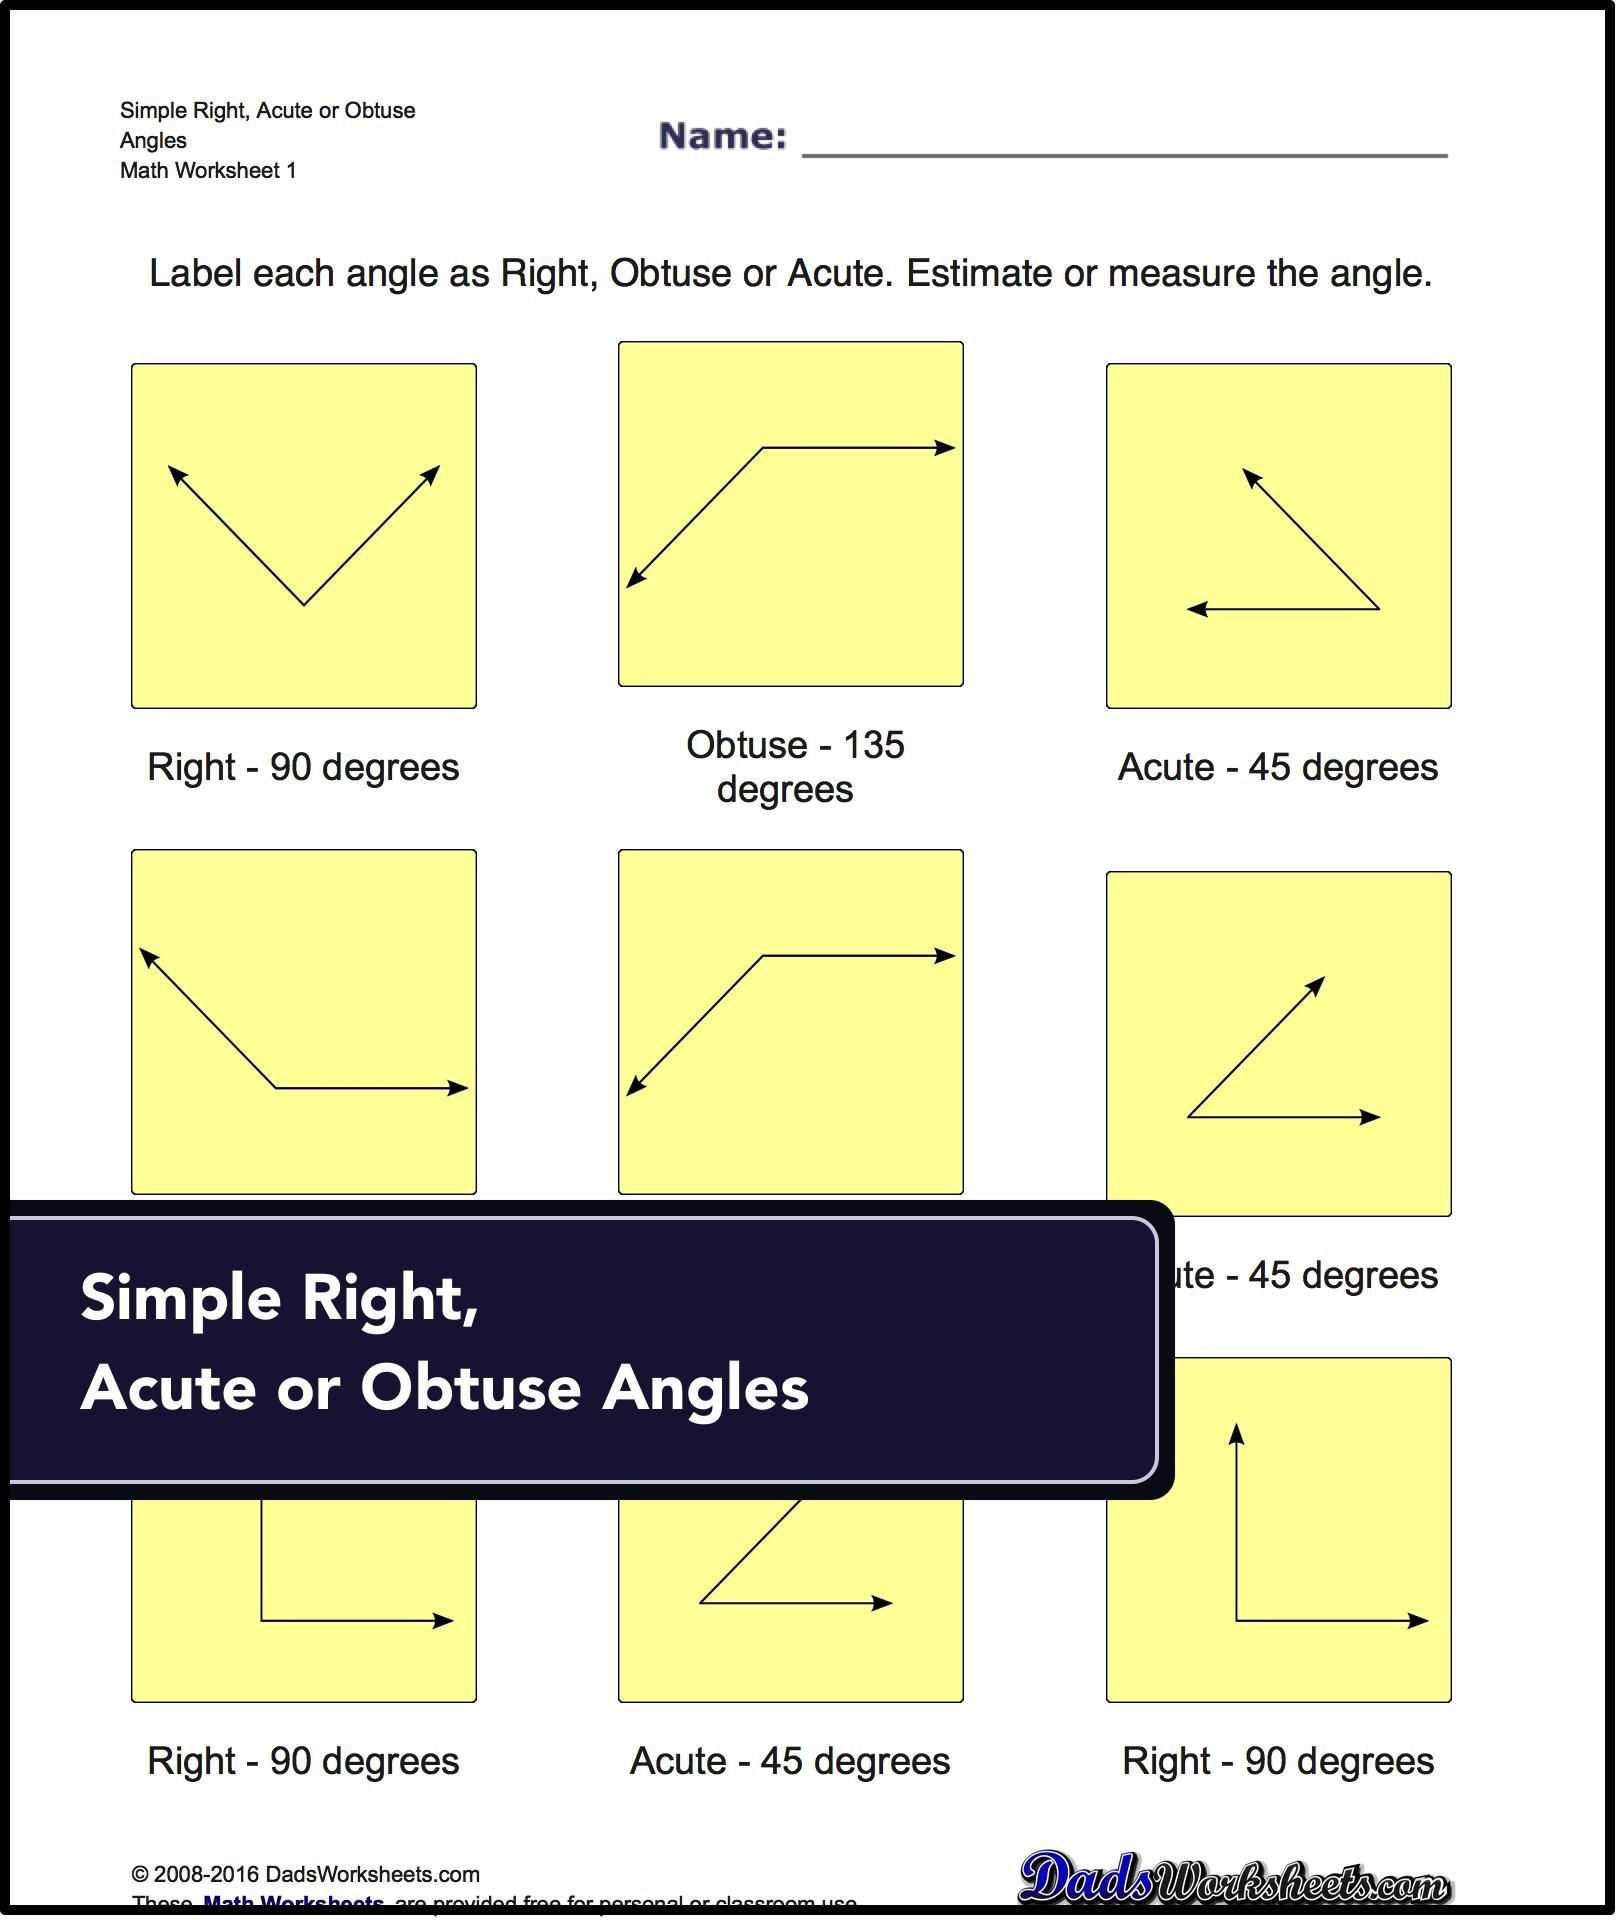 Basic Geometry Worksheets Topics Covered Angular Measurement